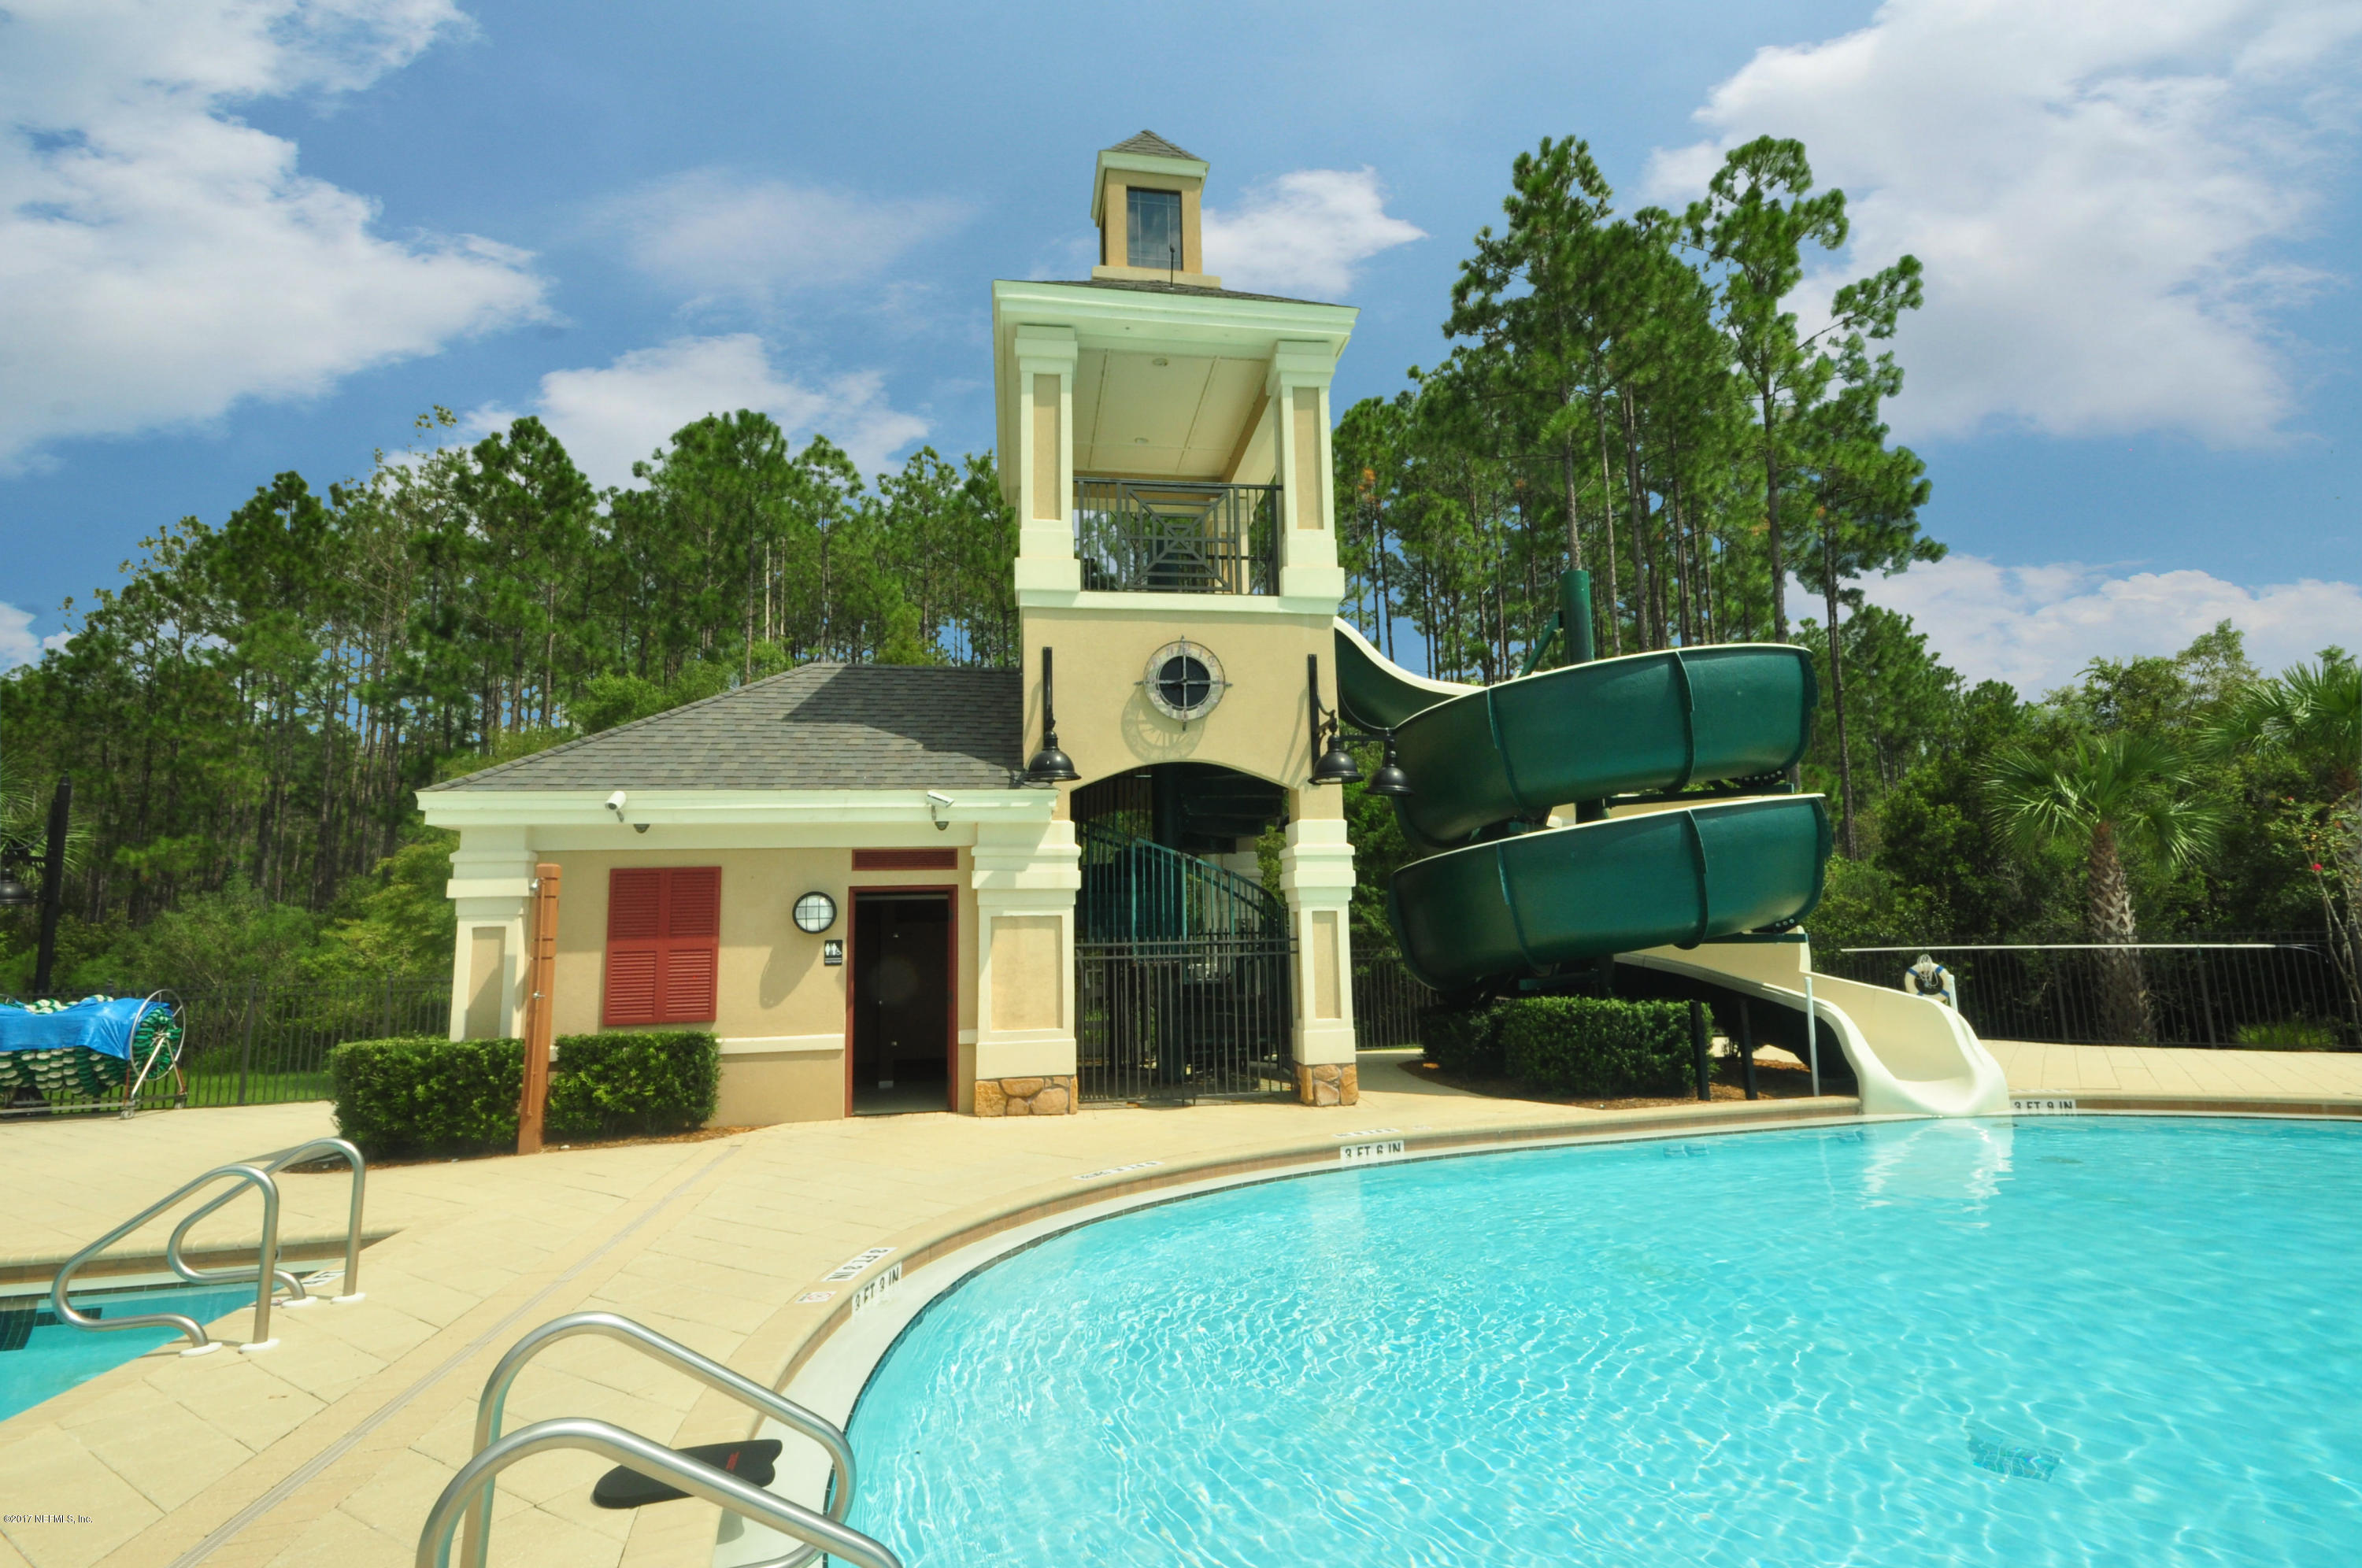 1245 CASTLE TRAIL, ST JOHNS, FLORIDA 32259, 5 Bedrooms Bedrooms, ,3 BathroomsBathrooms,Residential,For sale,CASTLE TRAIL,1059219